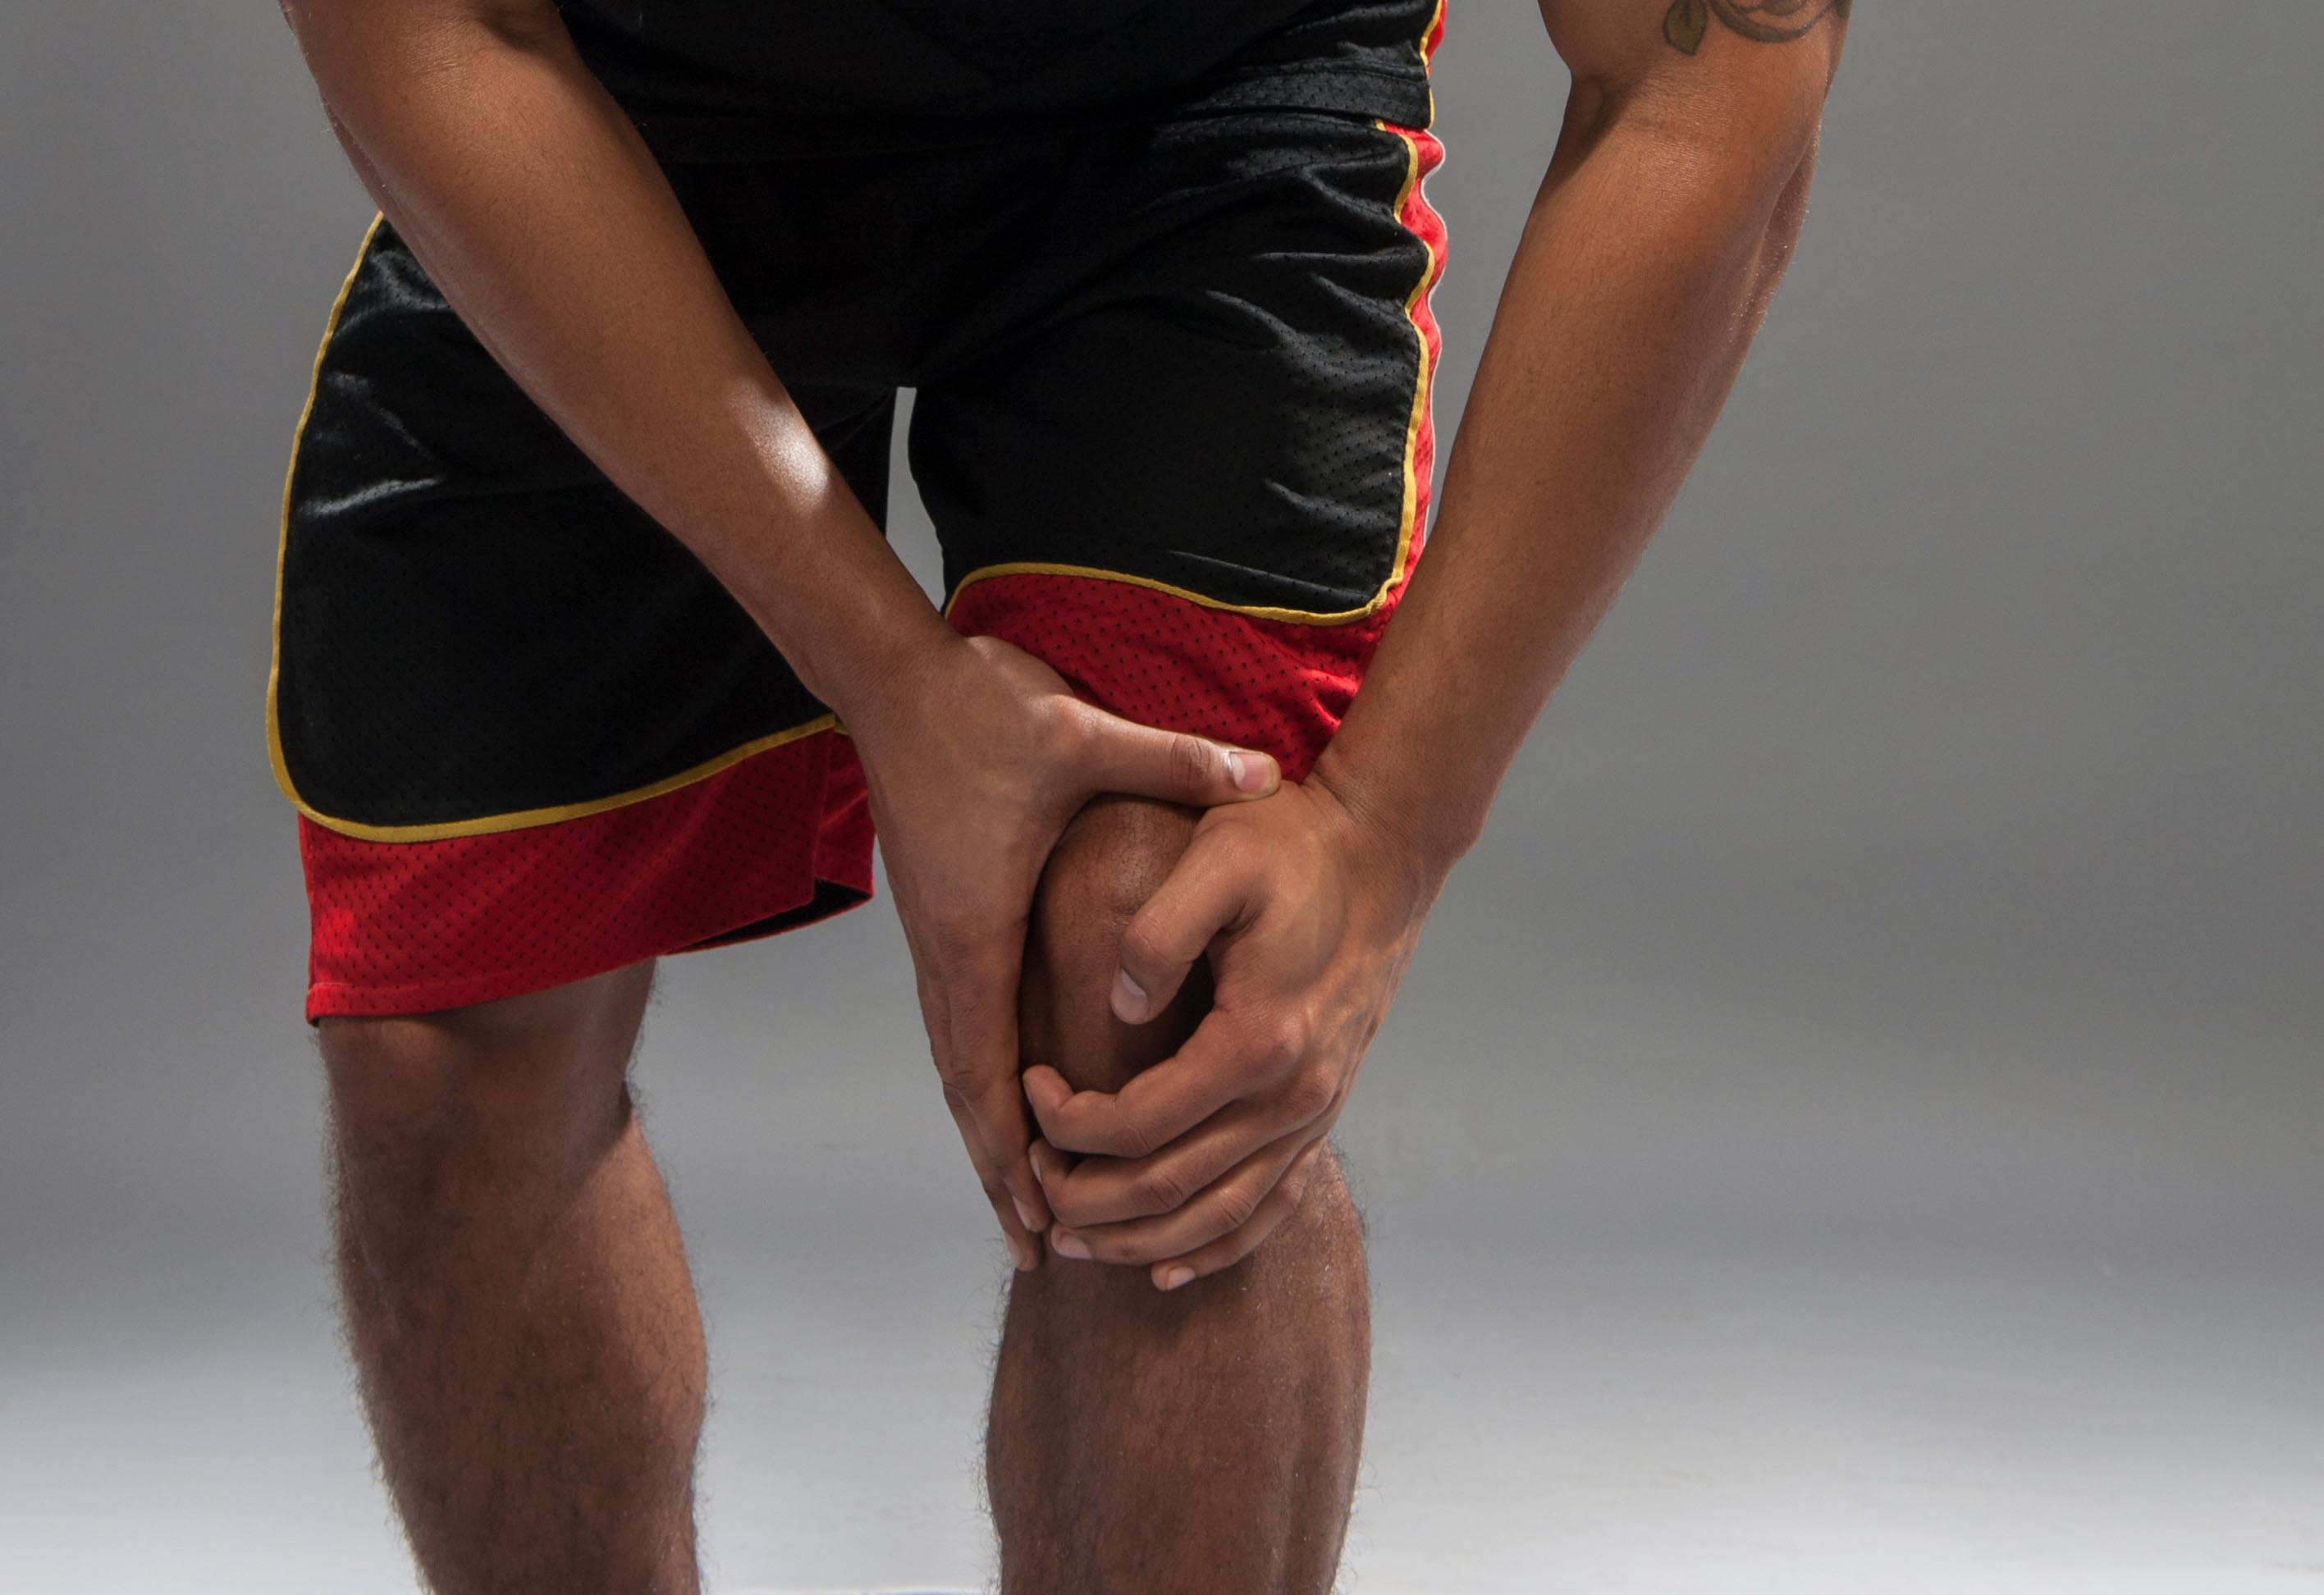 Oman Health: Know your knee pain